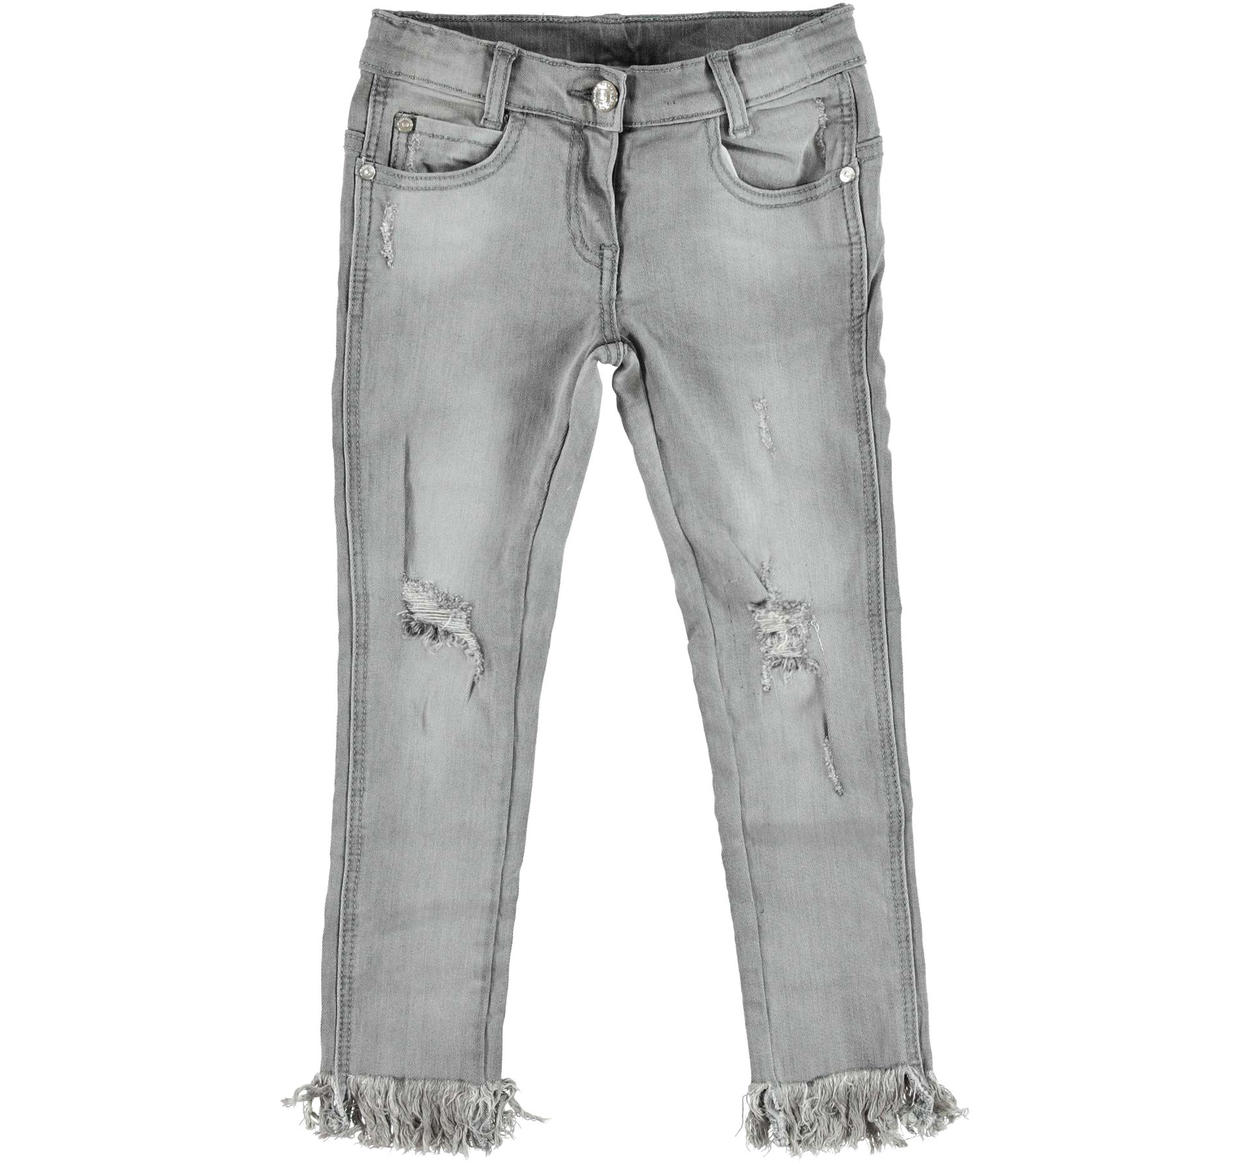 9d2f26912e Sarabanda stone washed super slim fit jeans with rips for girls from 6 to  16 years